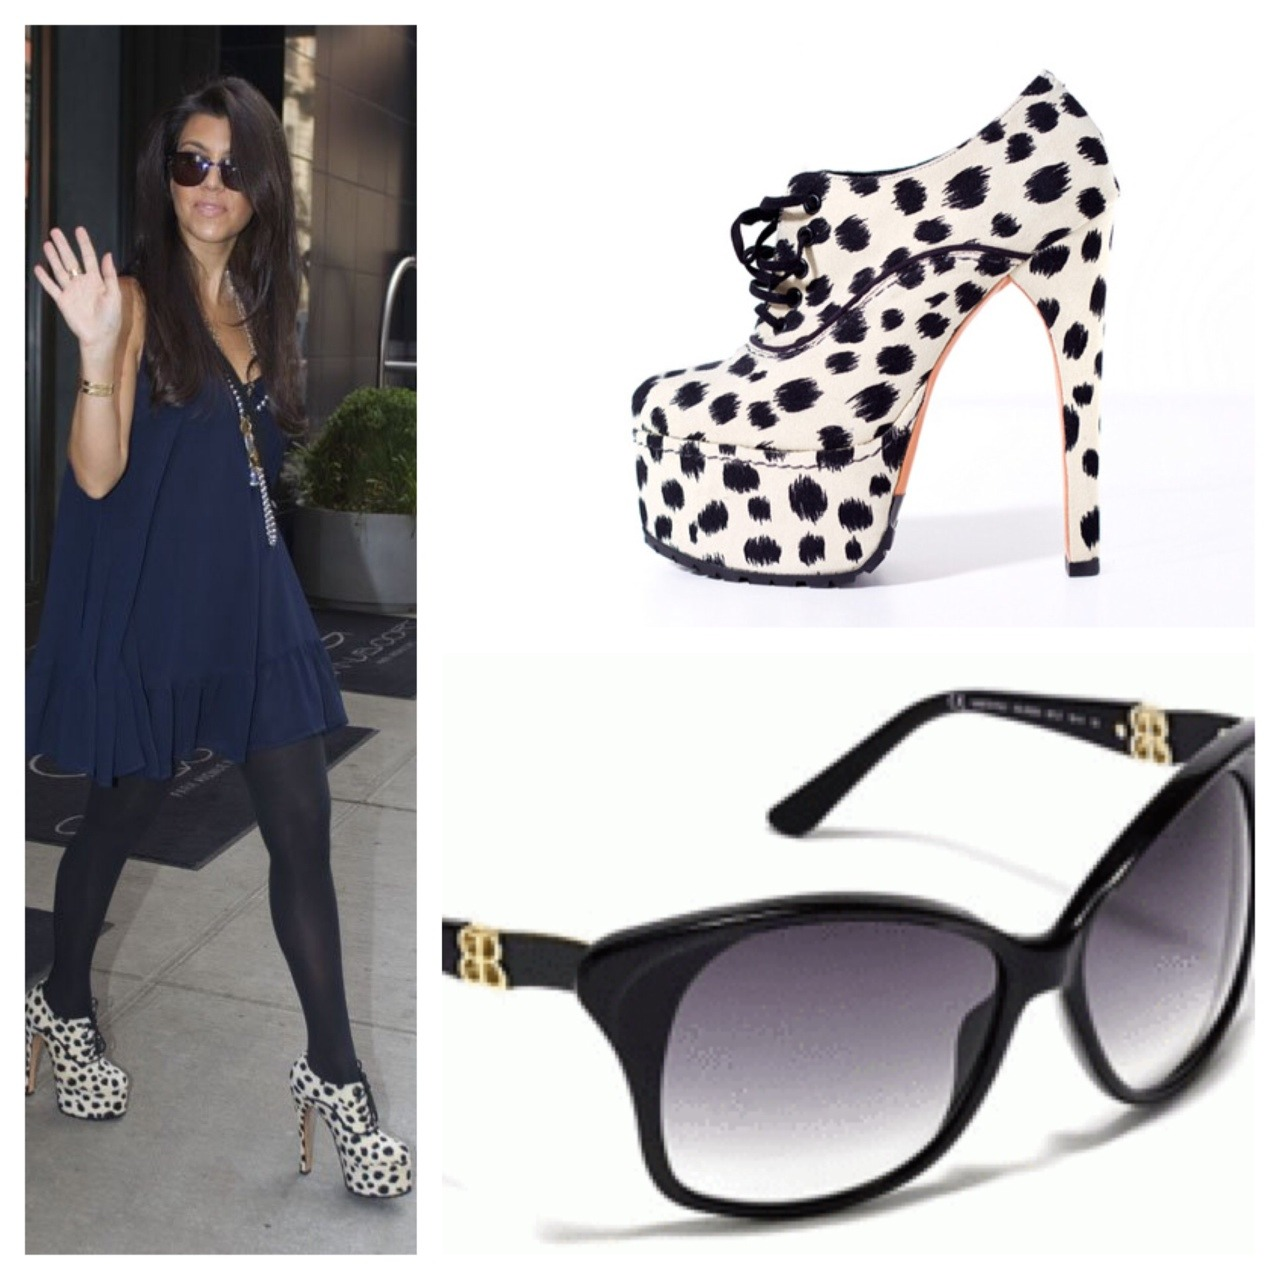 billidollarbaby:  GET THE LOOK: Kourtney Kardashian Dress: Finders Keepers Shoes: Penelope & Coco Necklace: Tat 2  Sunglasses: Balenciaga